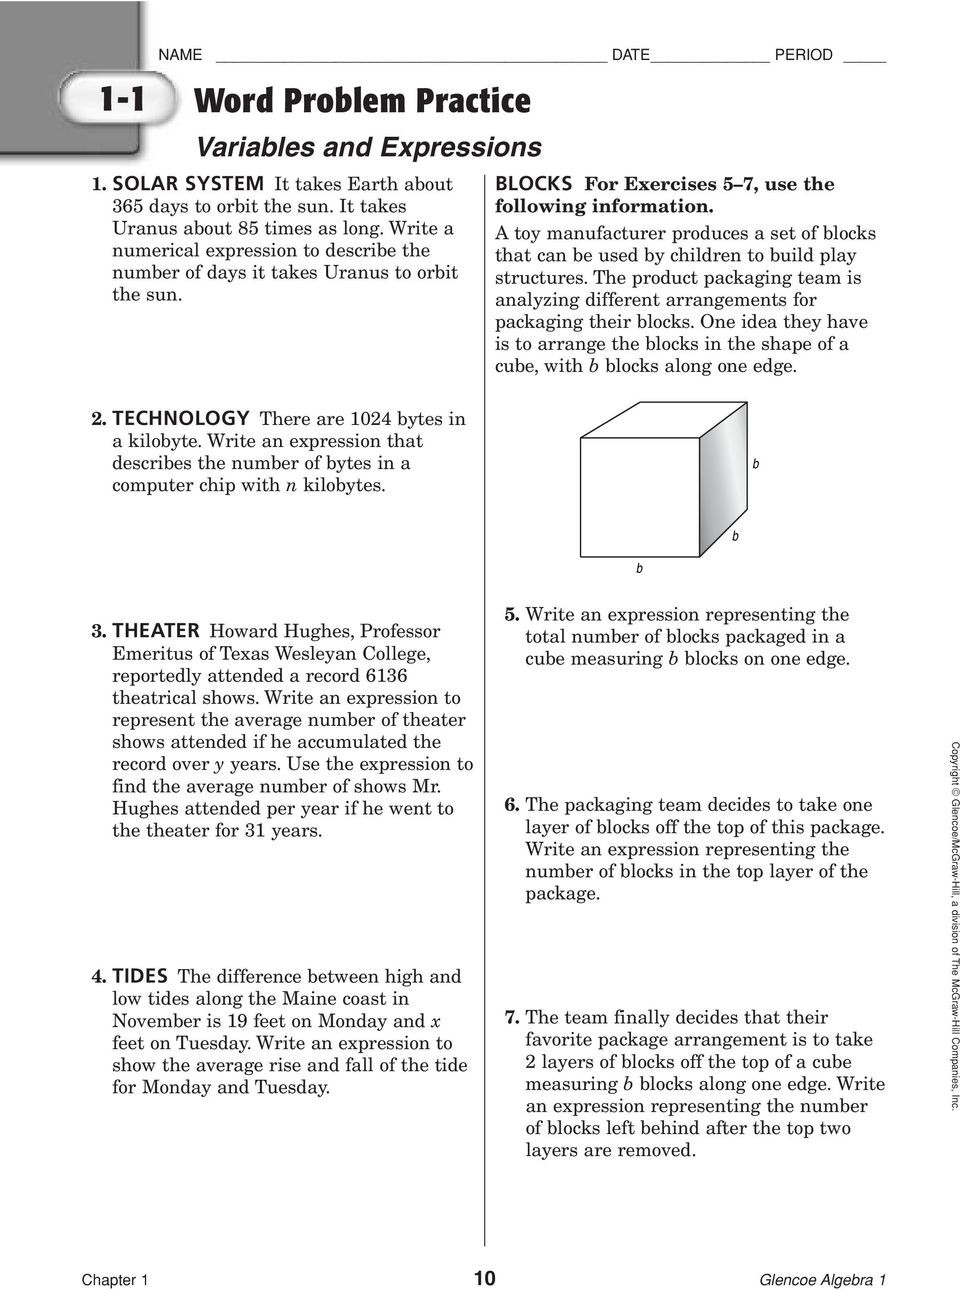 Variables and Expressions Worksheet Answers